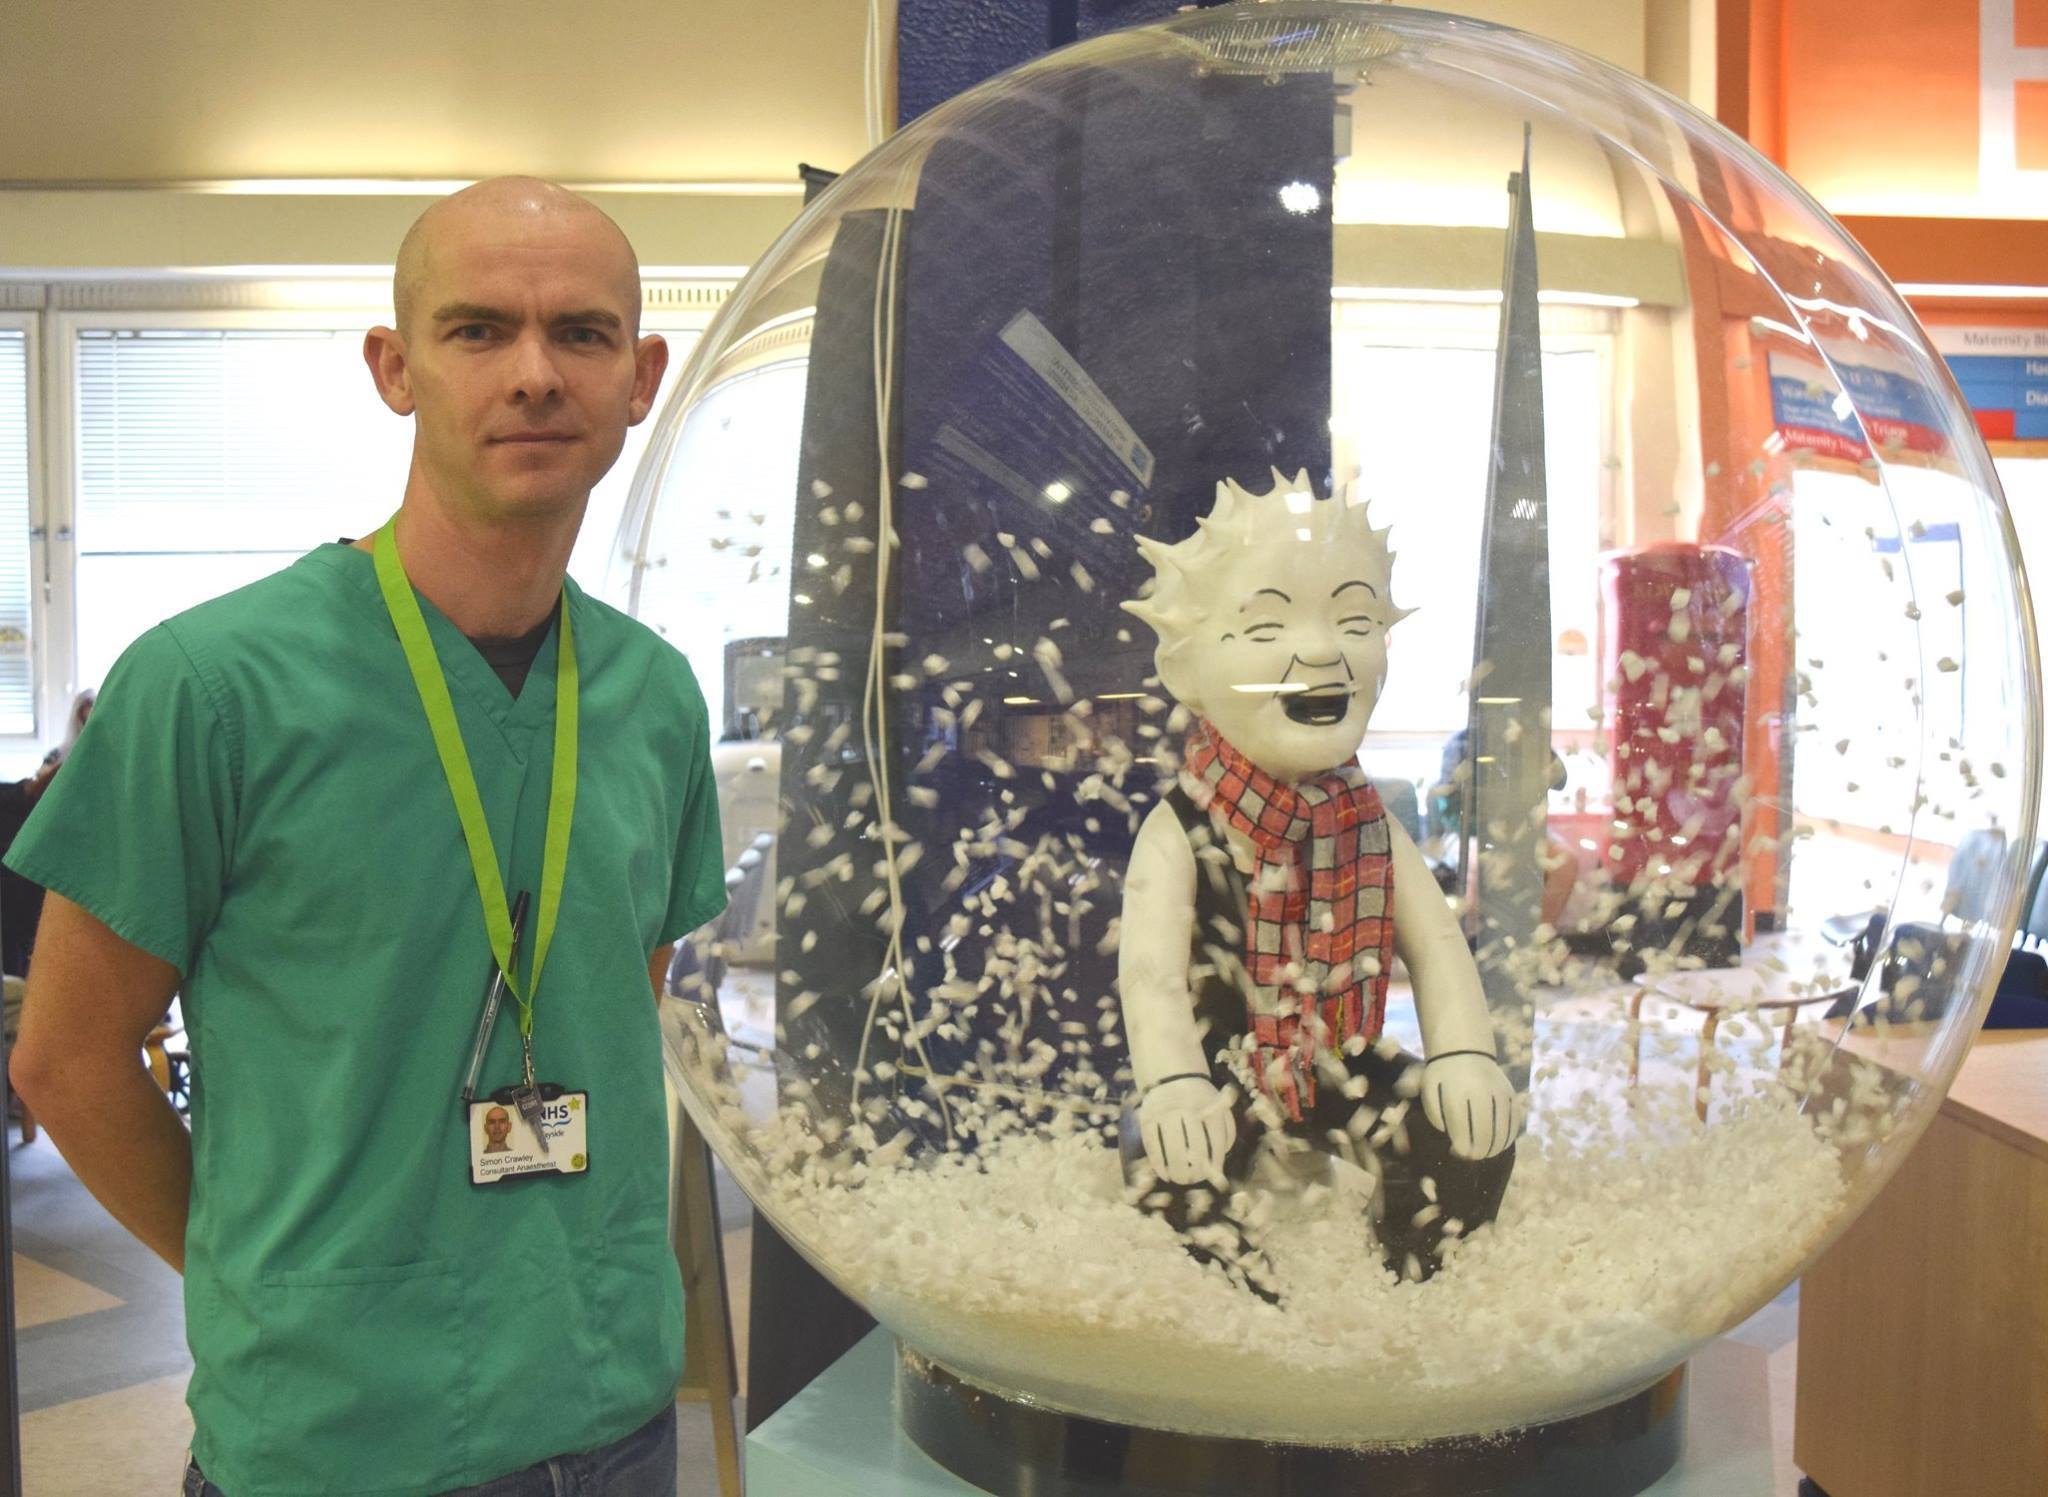 Simon Crawley with a special Oor Wullie trail statue that has been on display at Ninewells Hospital.